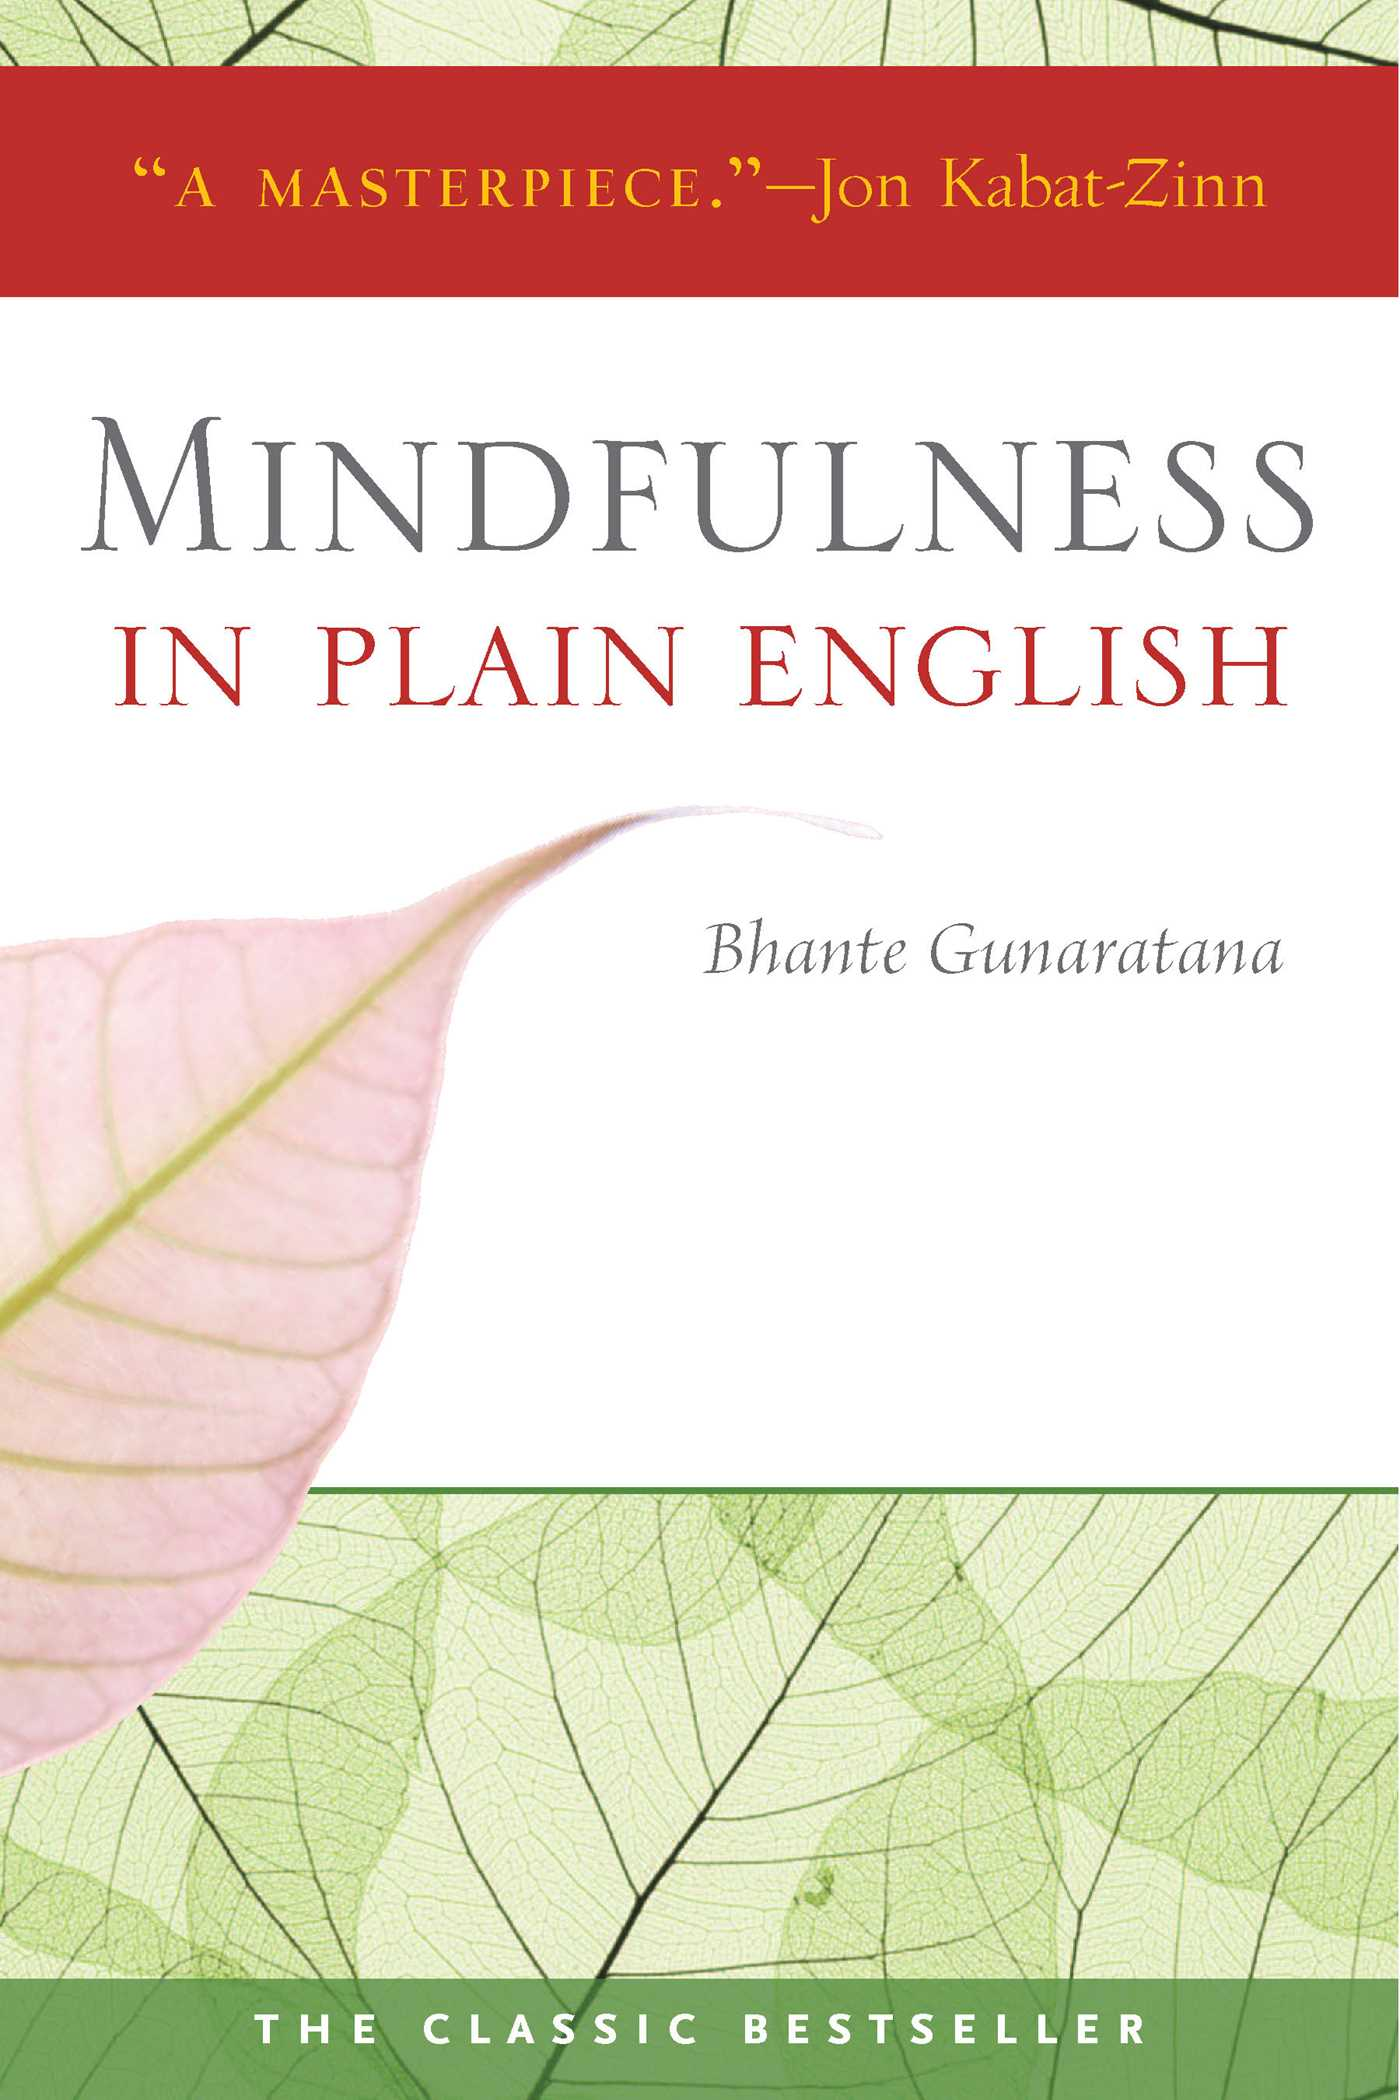 Mindfulness-in-plain-english-9780861719068_hr